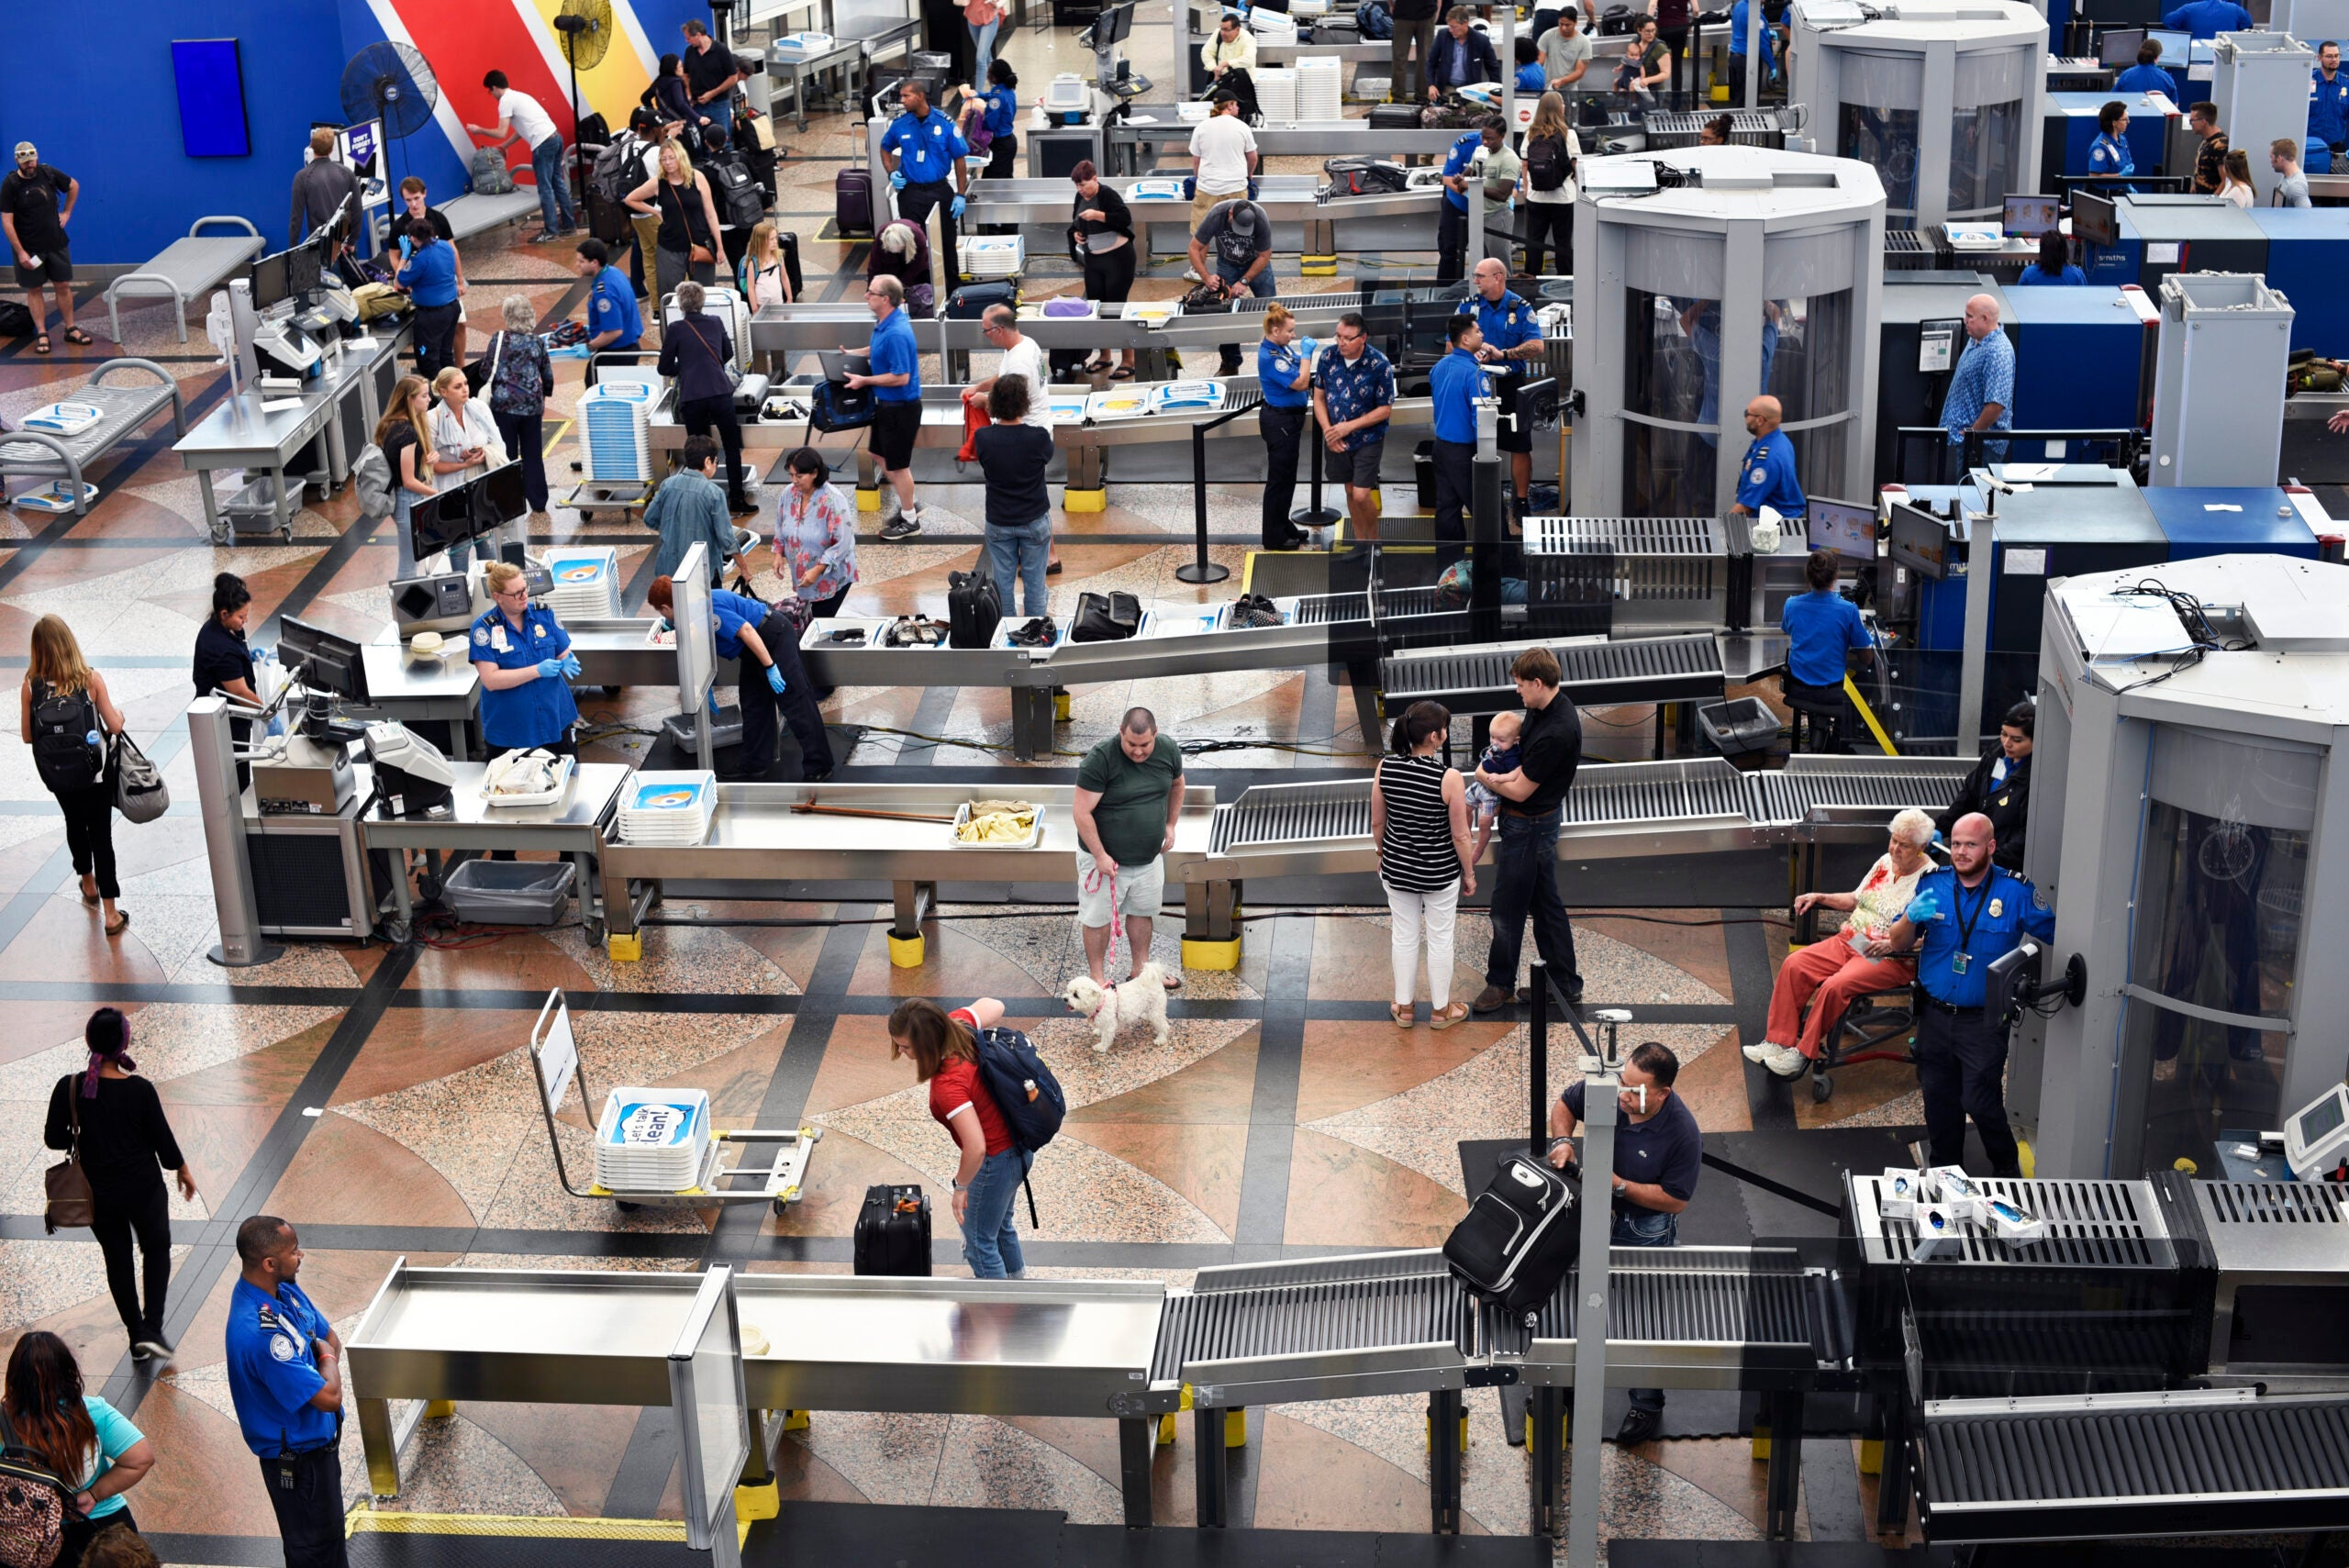 Nearly 40% of TSA workers are unvaccinated ahead of November deadline